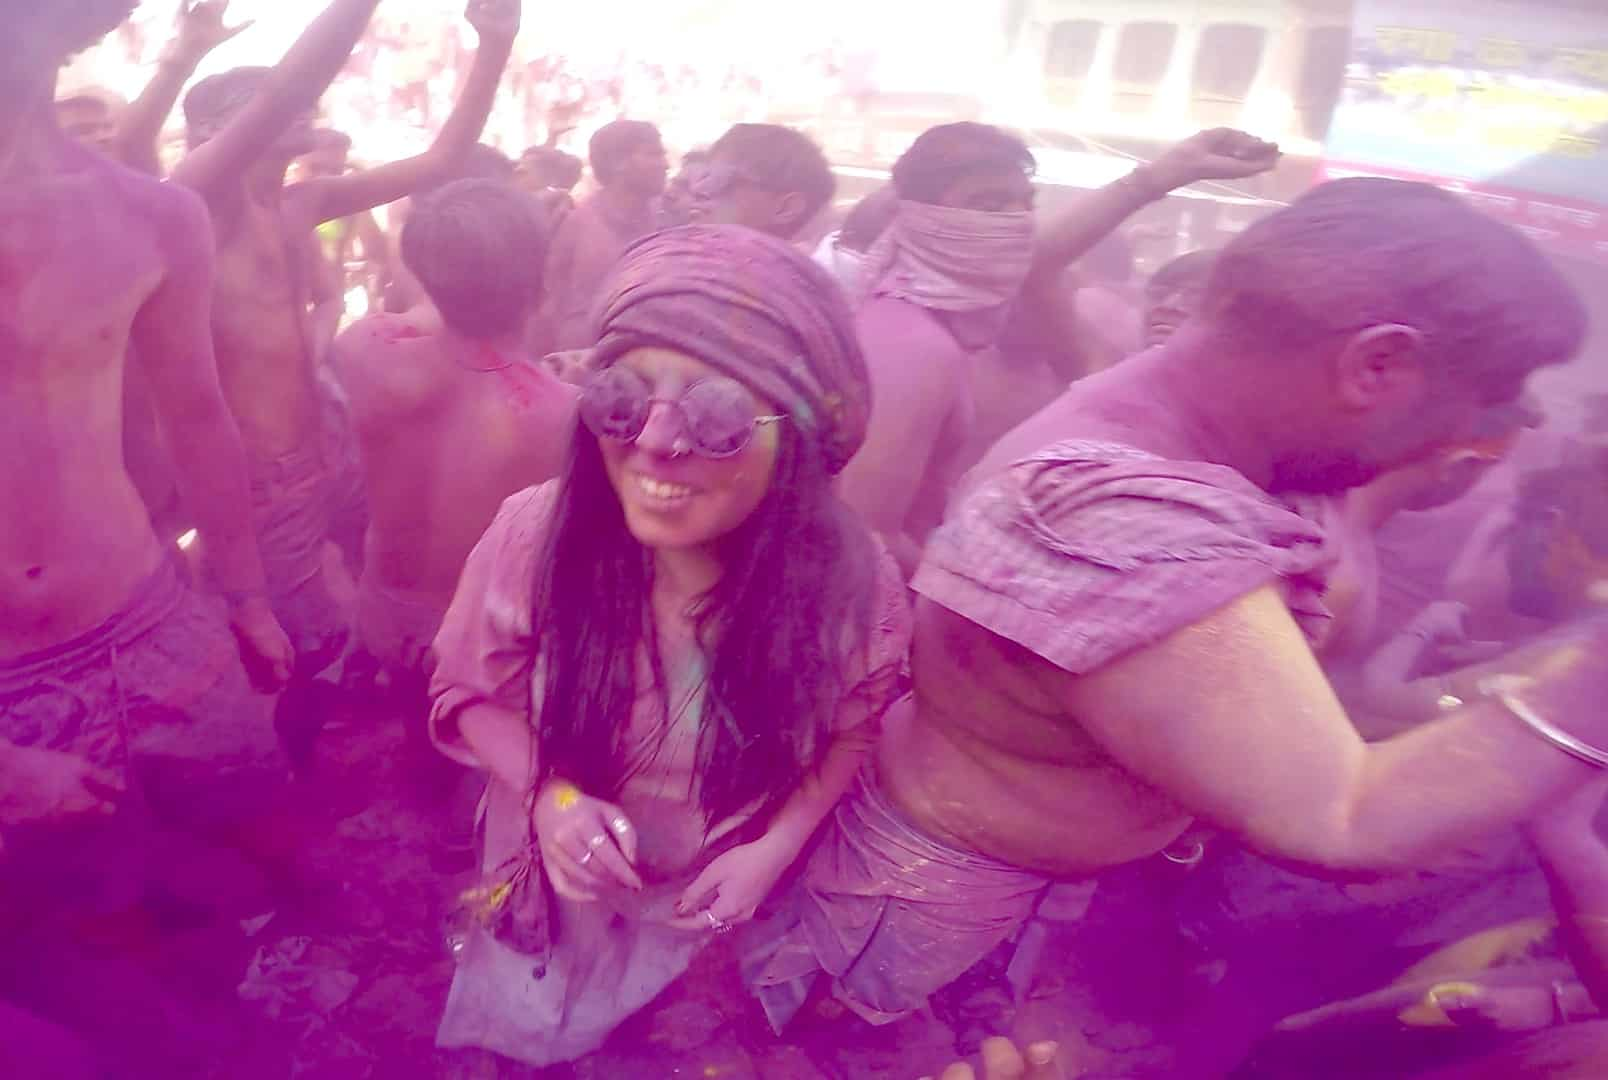 female safety tips for holi festival india